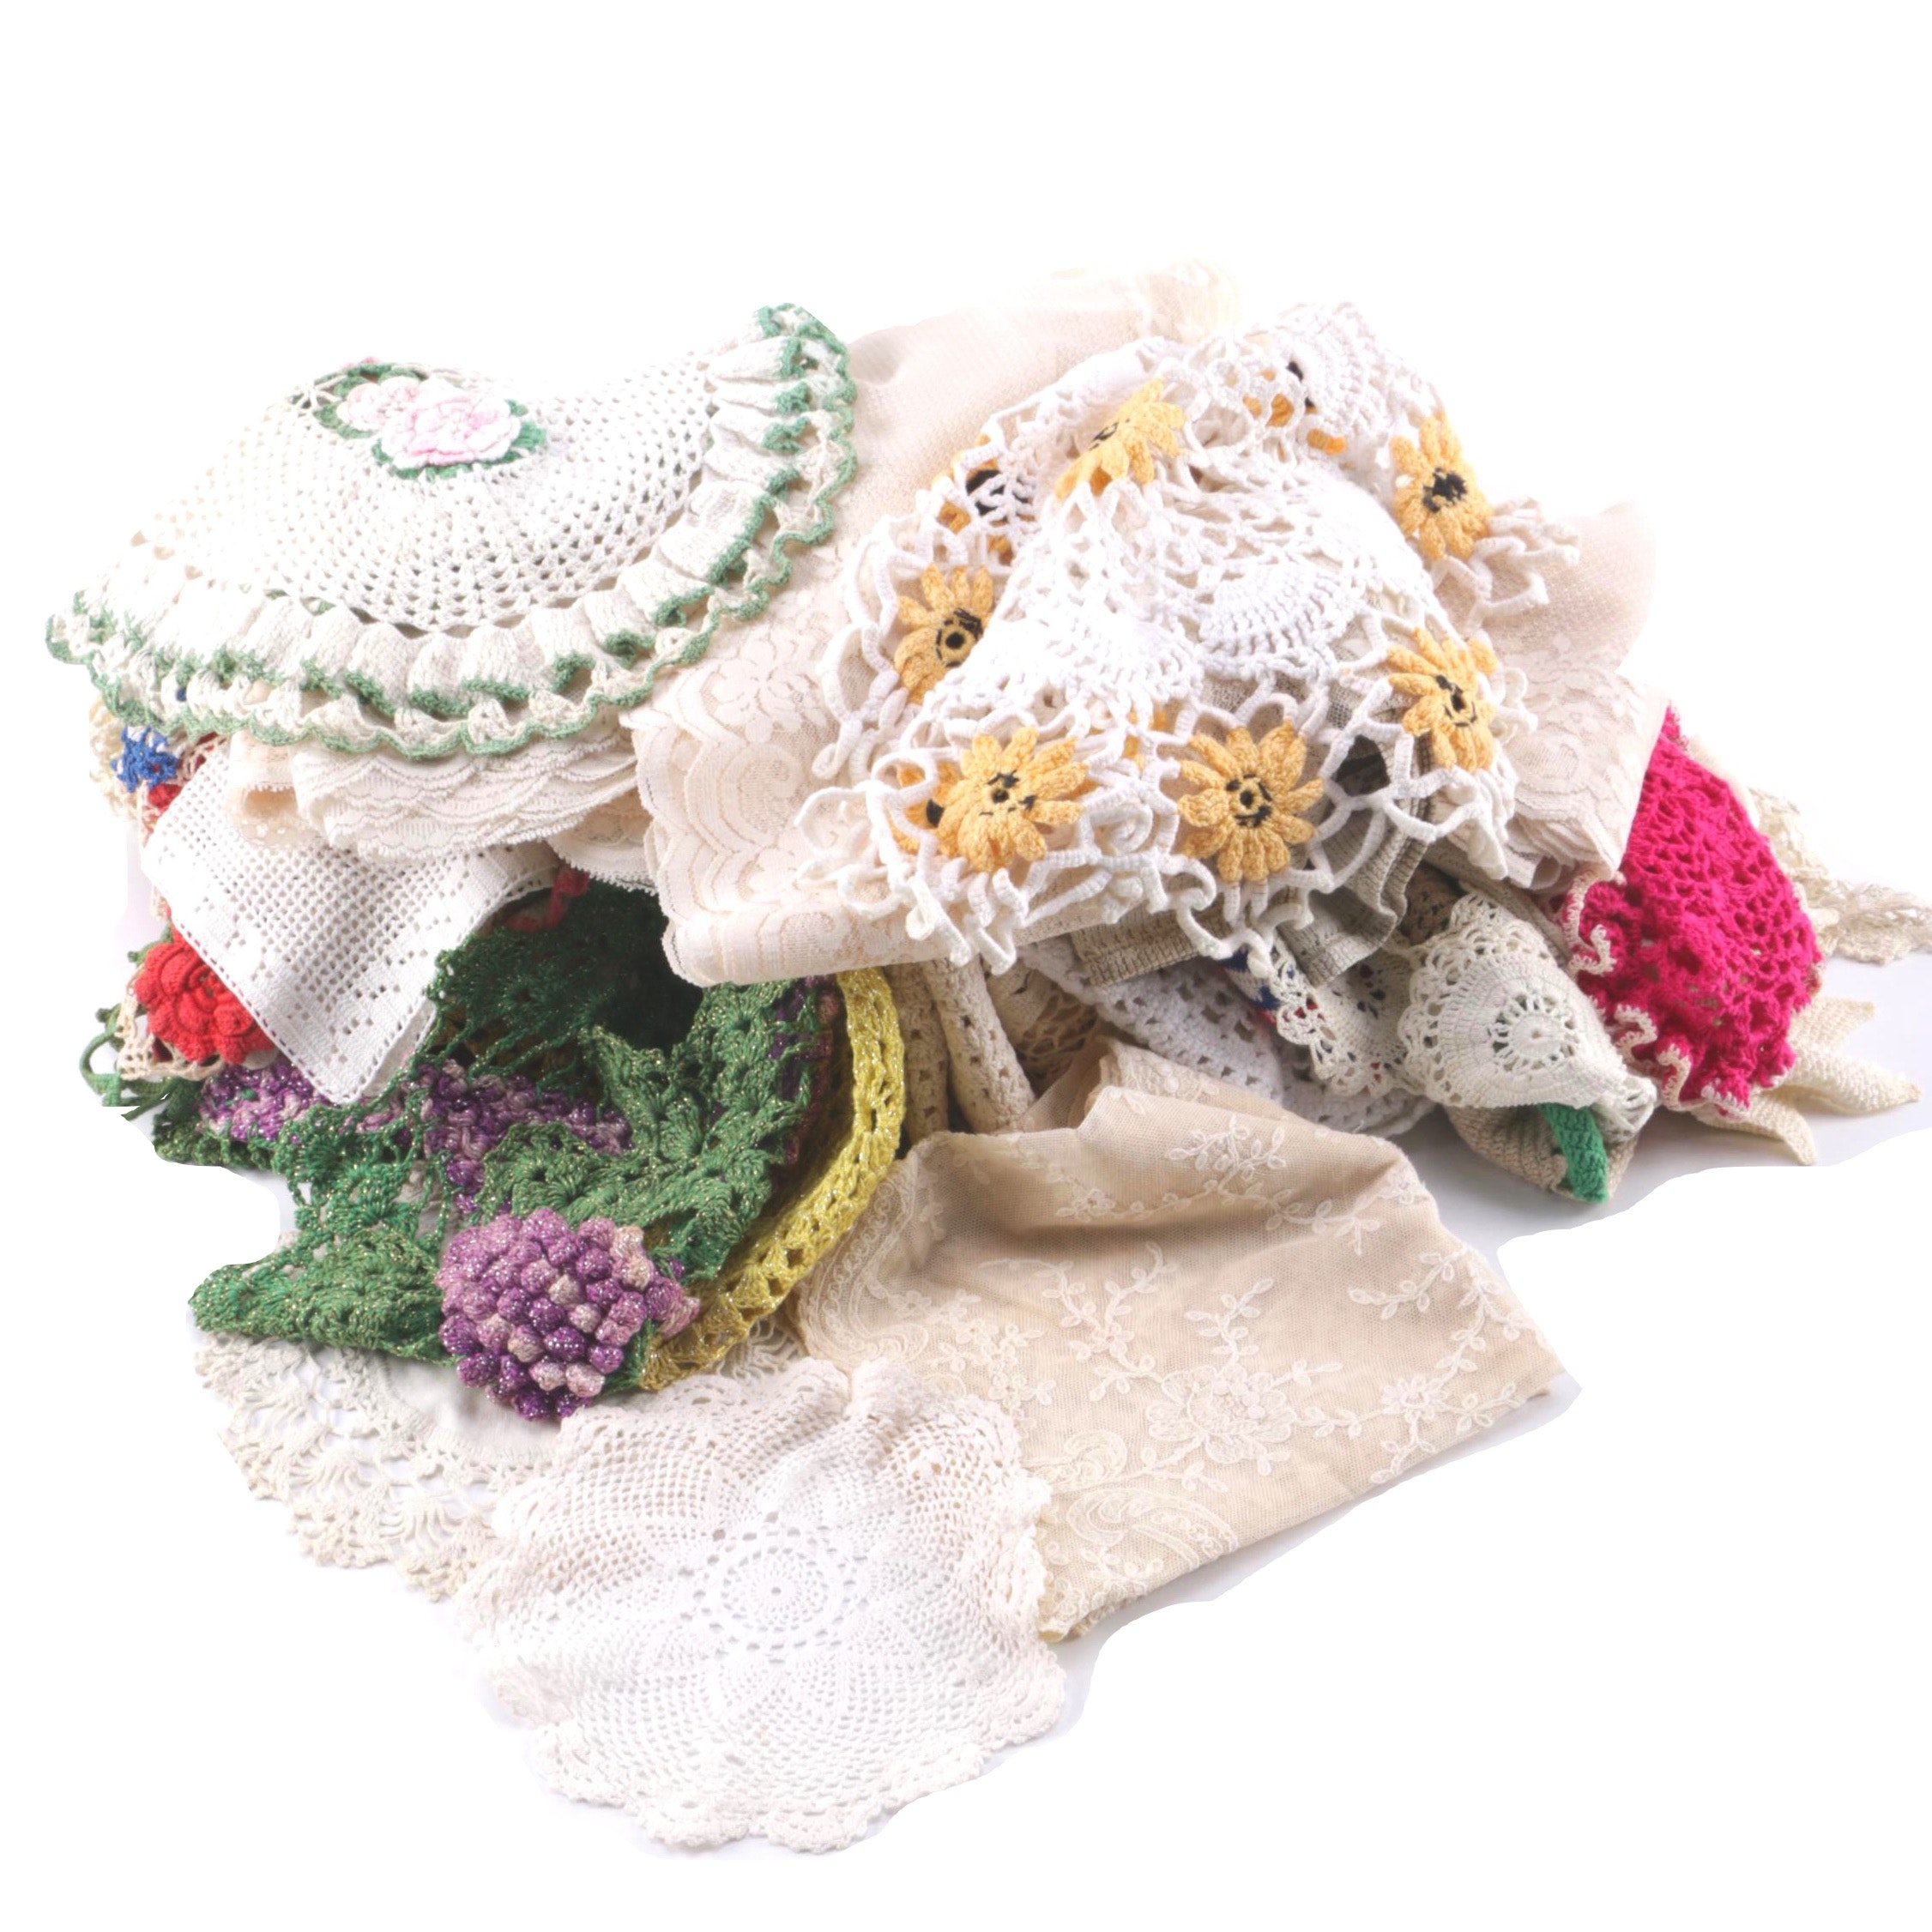 Doilies and Lace Linens